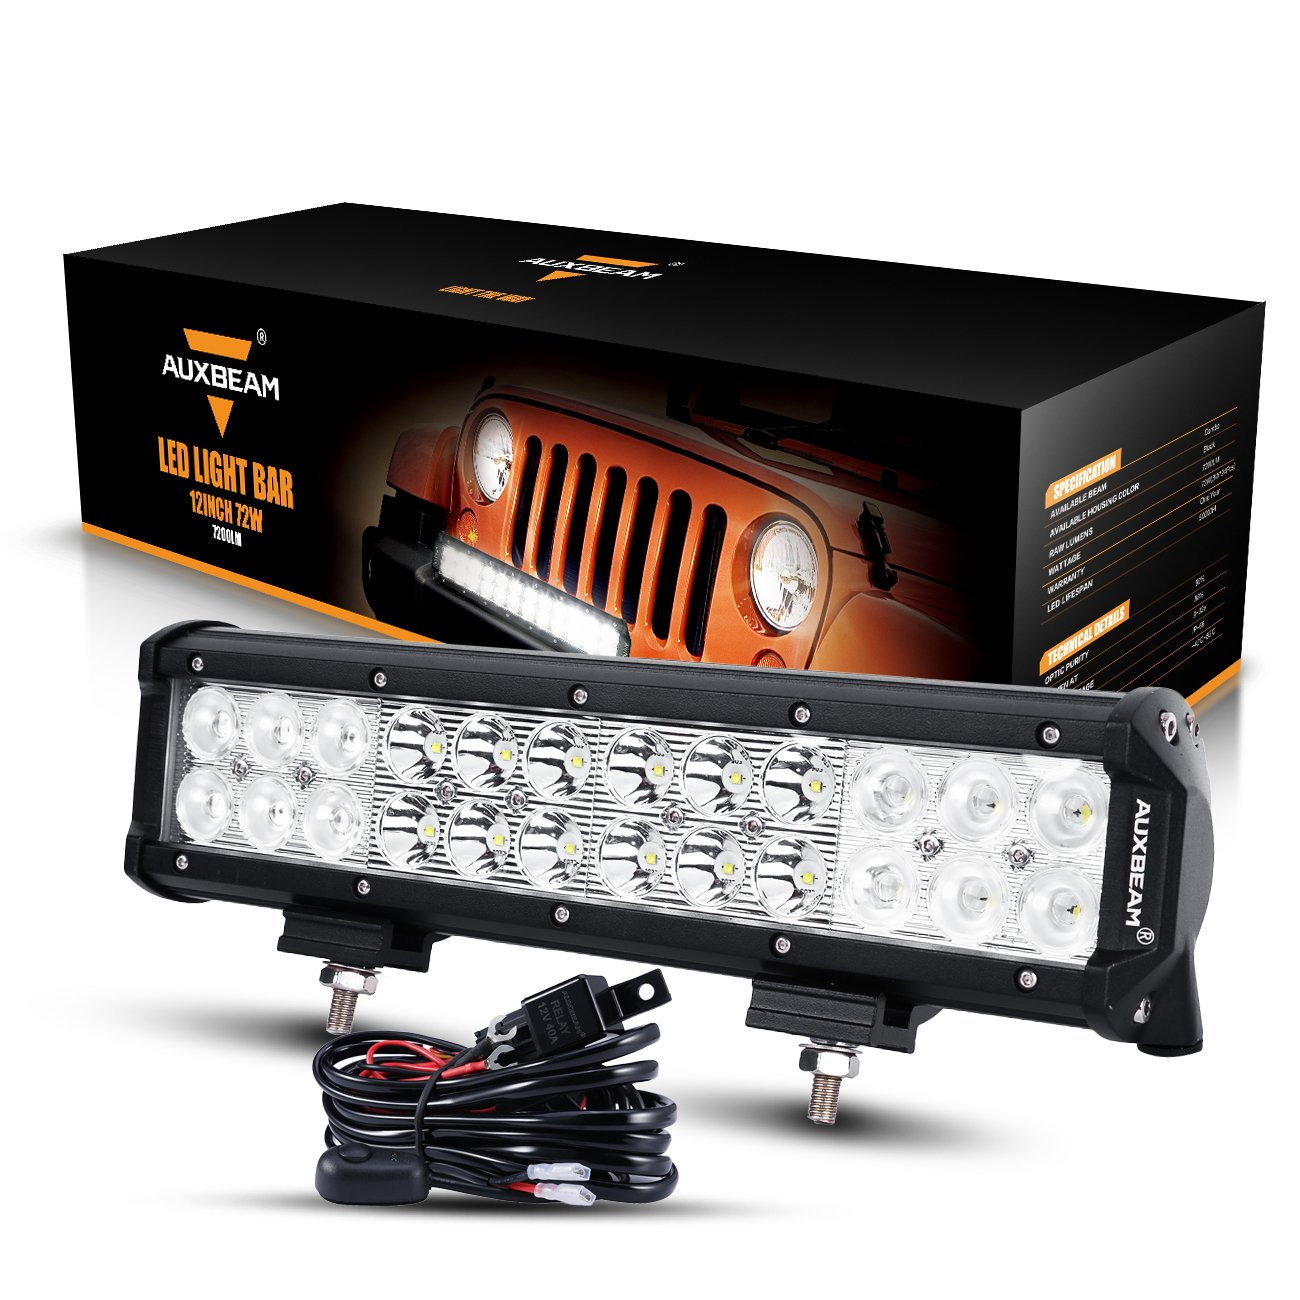 Auxbeam 12 Inch LED Light Bar